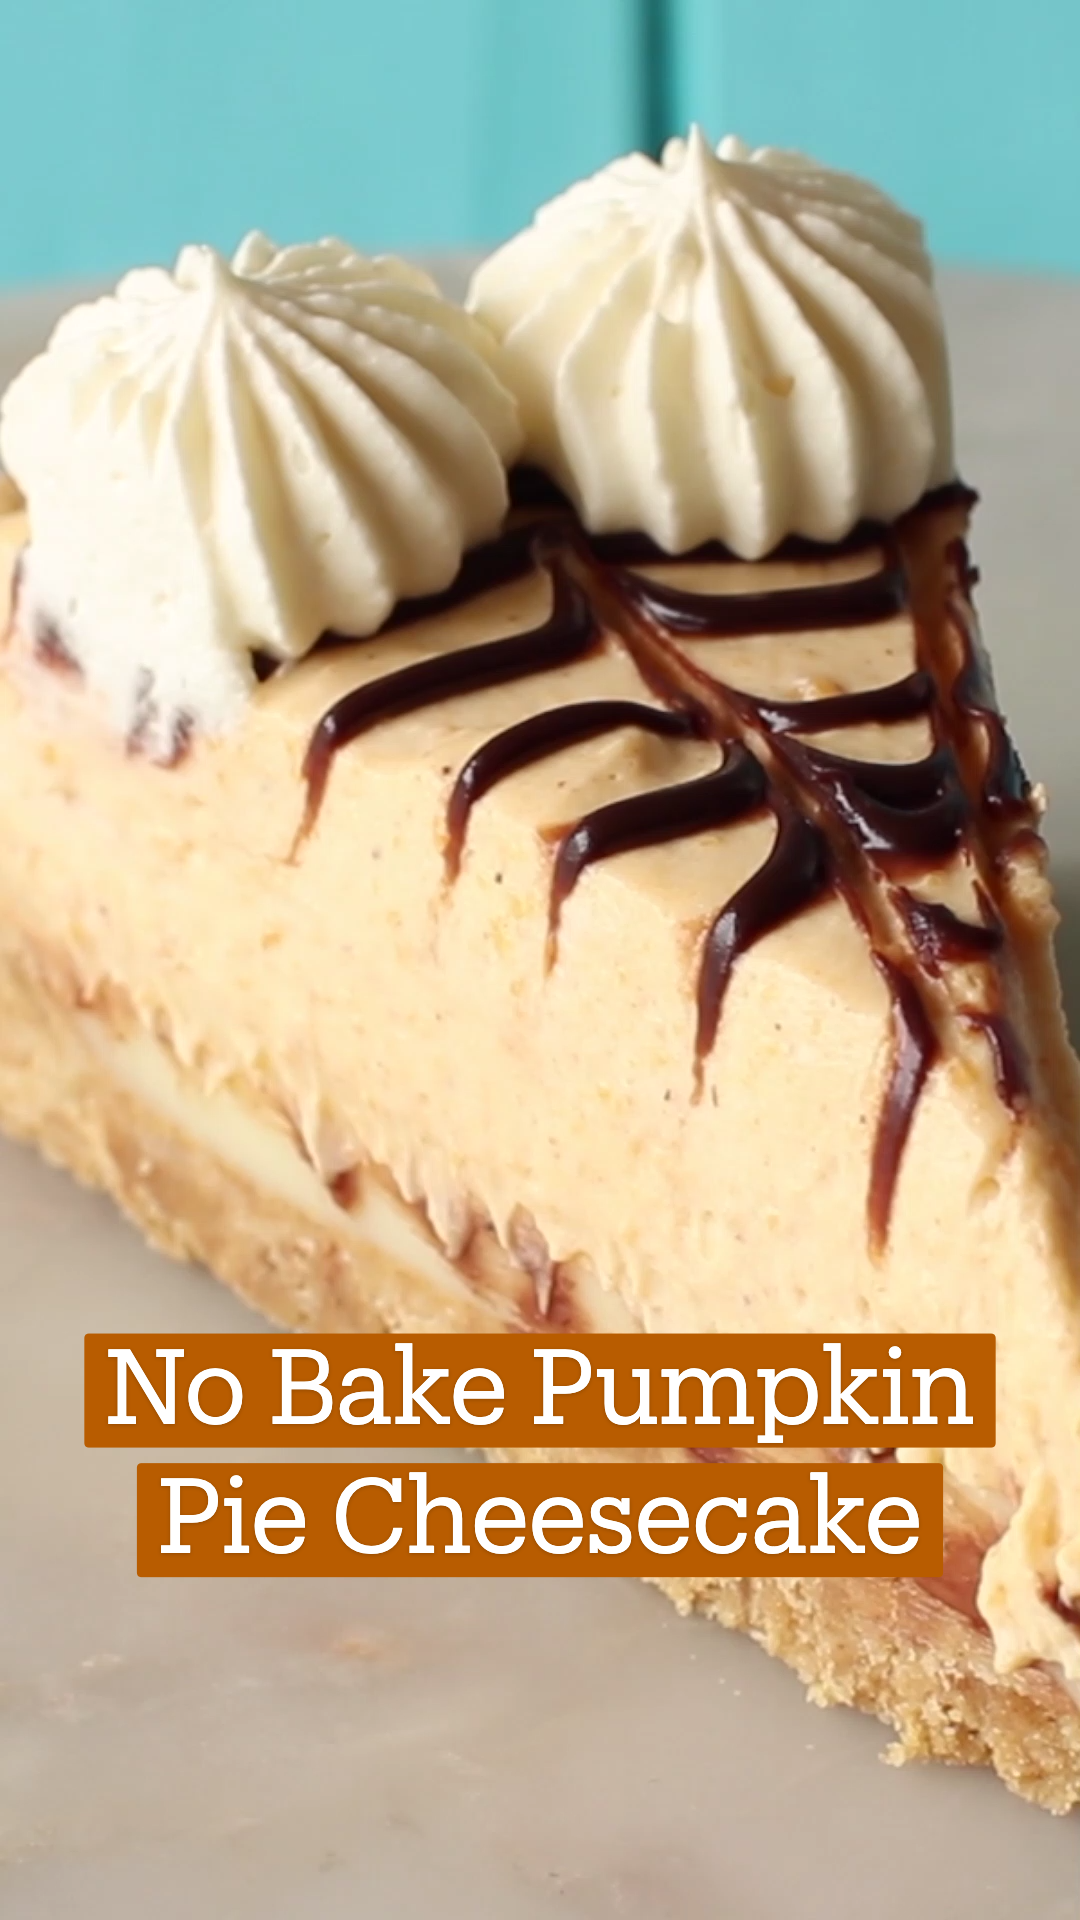 Photo of No Bake Pumpkin Pie Cheesecake